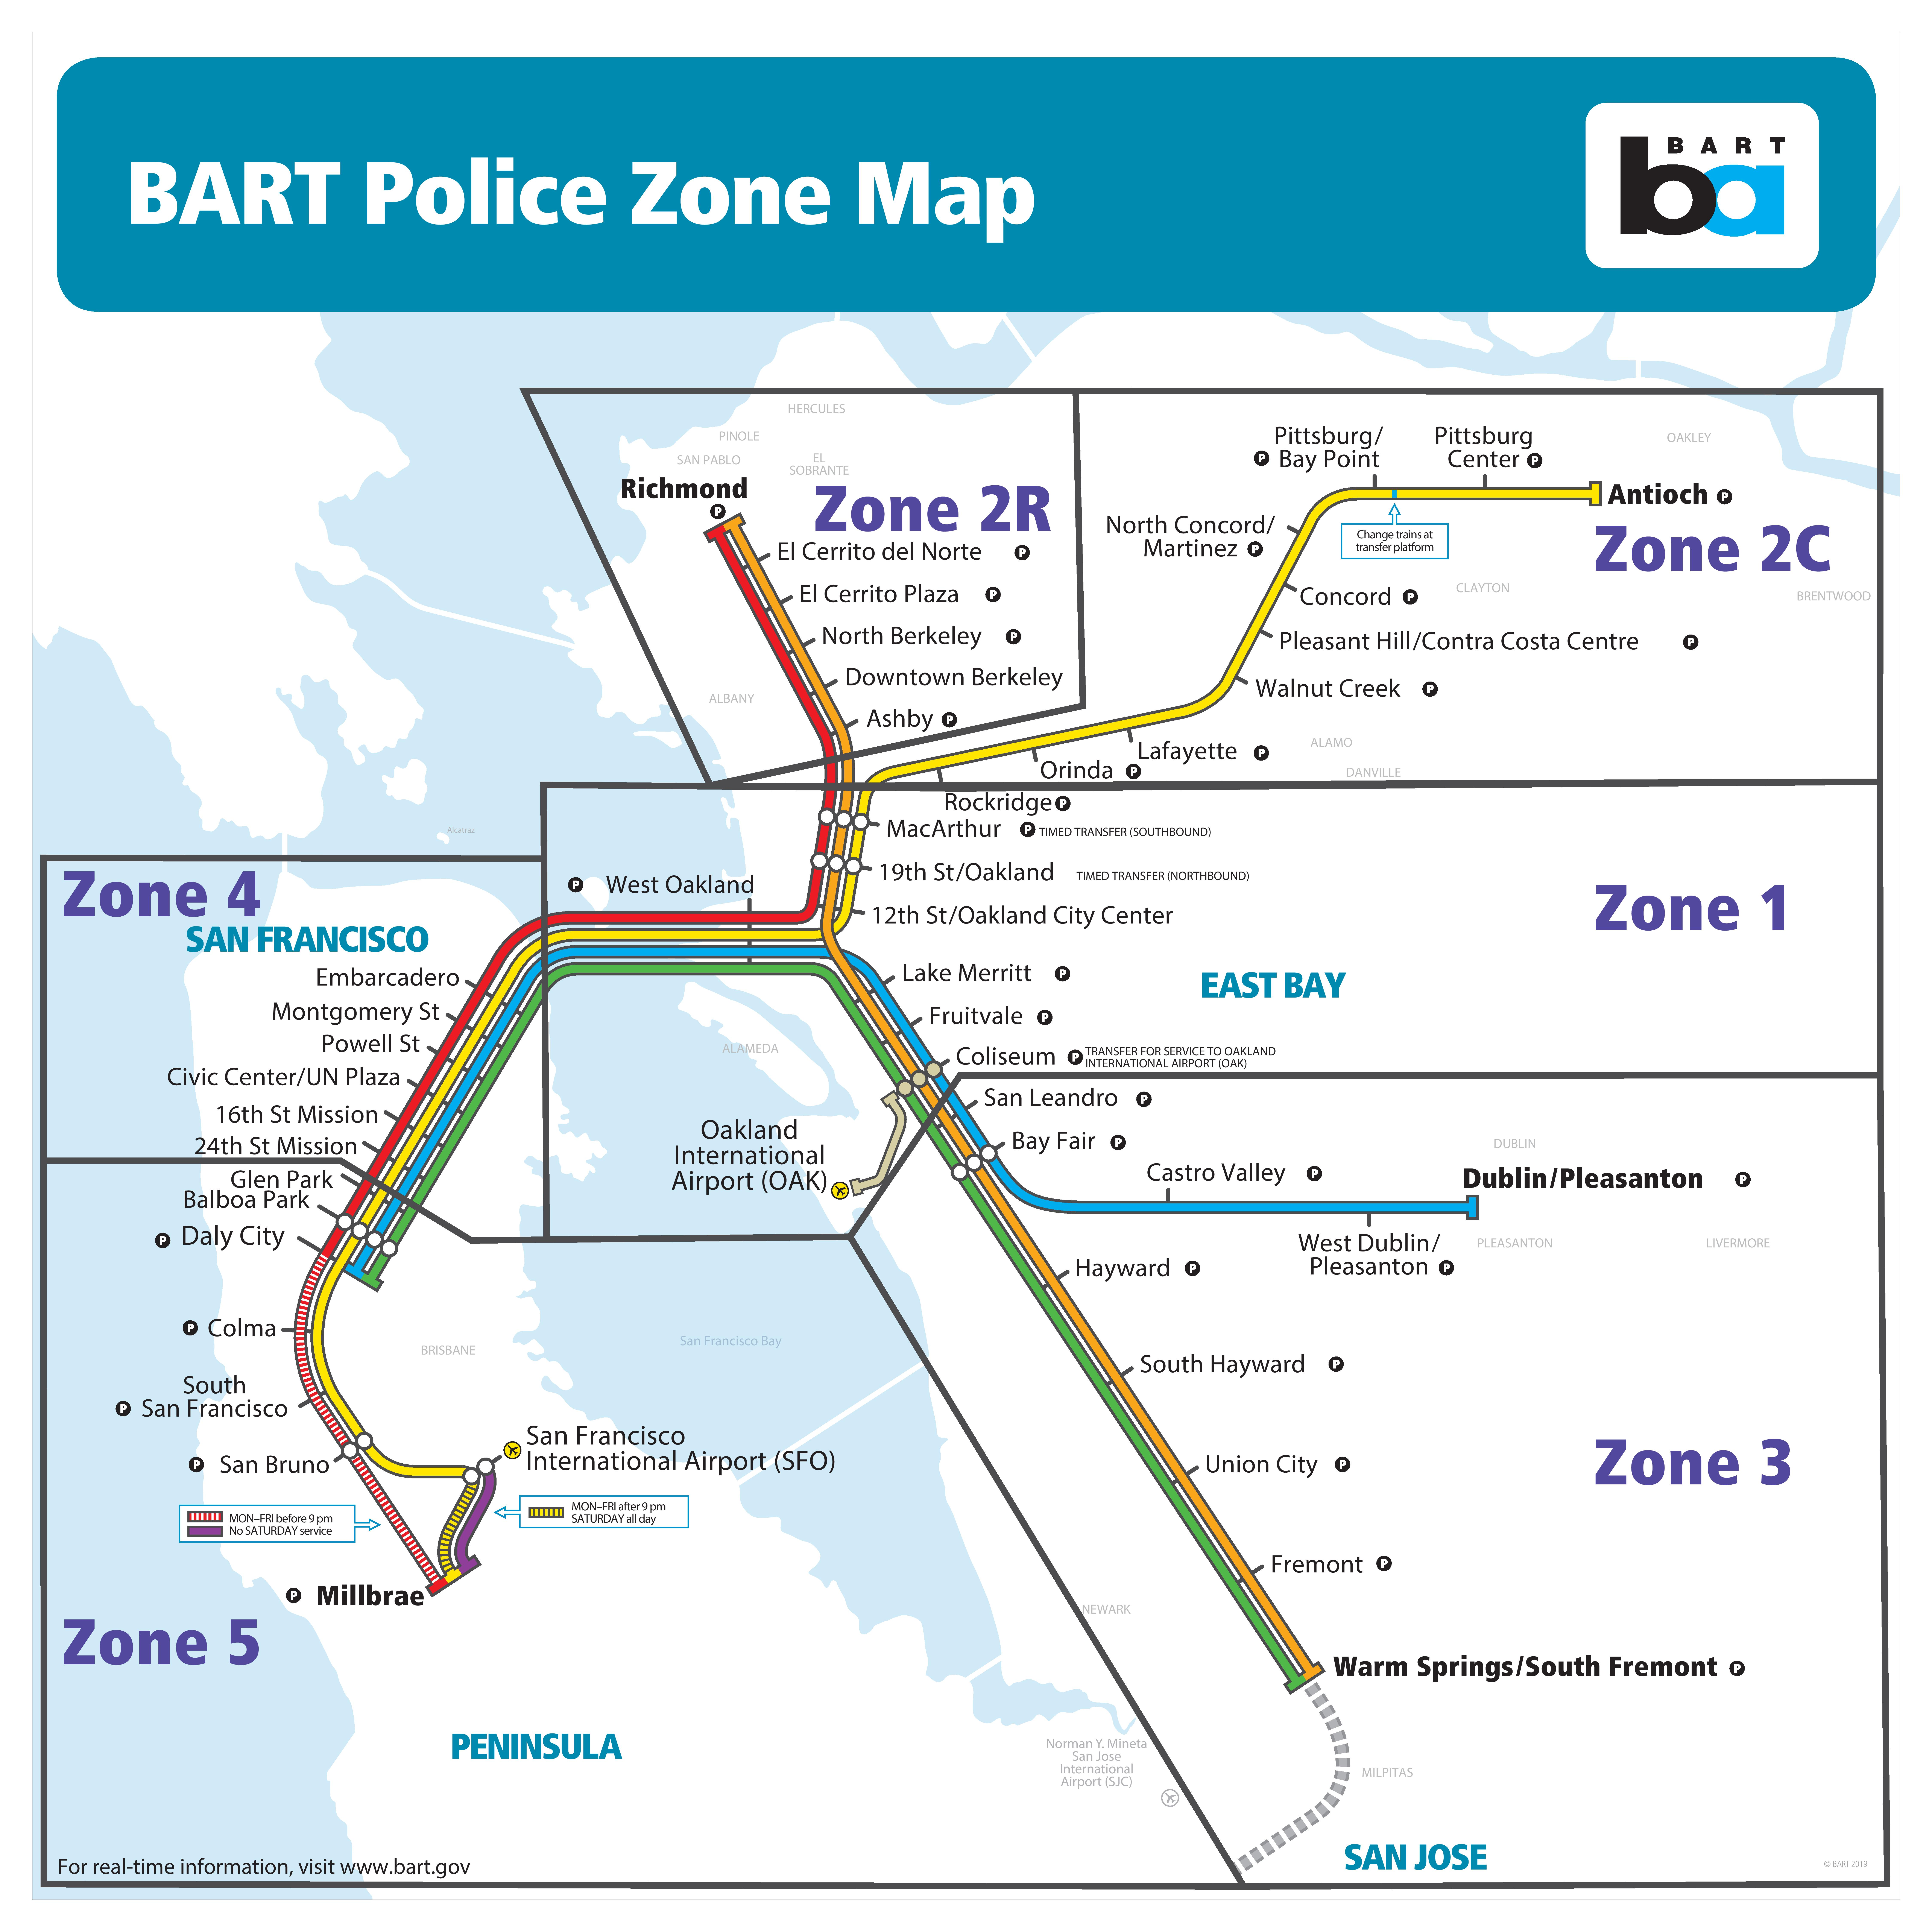 BART Zone map